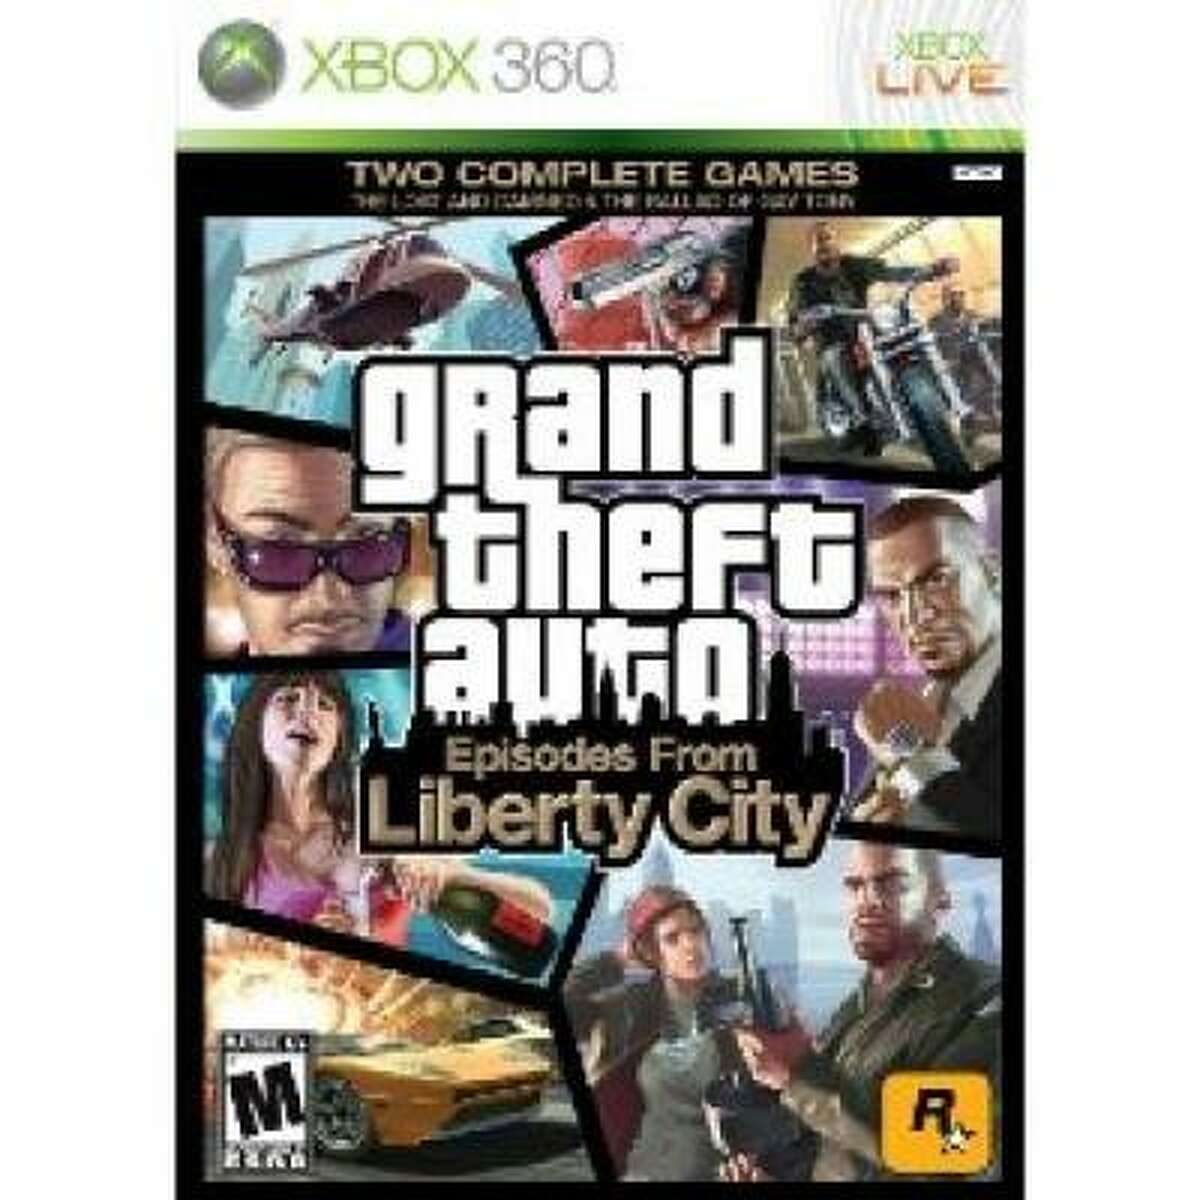 Grand Theft Auto: Episodes from Liberty City Rockstar; Rated M for Mature; $39.99 Episodes from Liberty City combines the two downloadable expansions of Grand Theft Auto IV onto one disc. The Lost and the Damned puts in you in the shoes of Johnny K, the No. 2 man in a Liberty City bike gang. In The Ballad of Gay Tony you play as Luis, the bodyguard of a chic and rich nightclub owner. The stories are wildly different, but both episodes offer more of the same great gameplay and writing that GTA is known for.